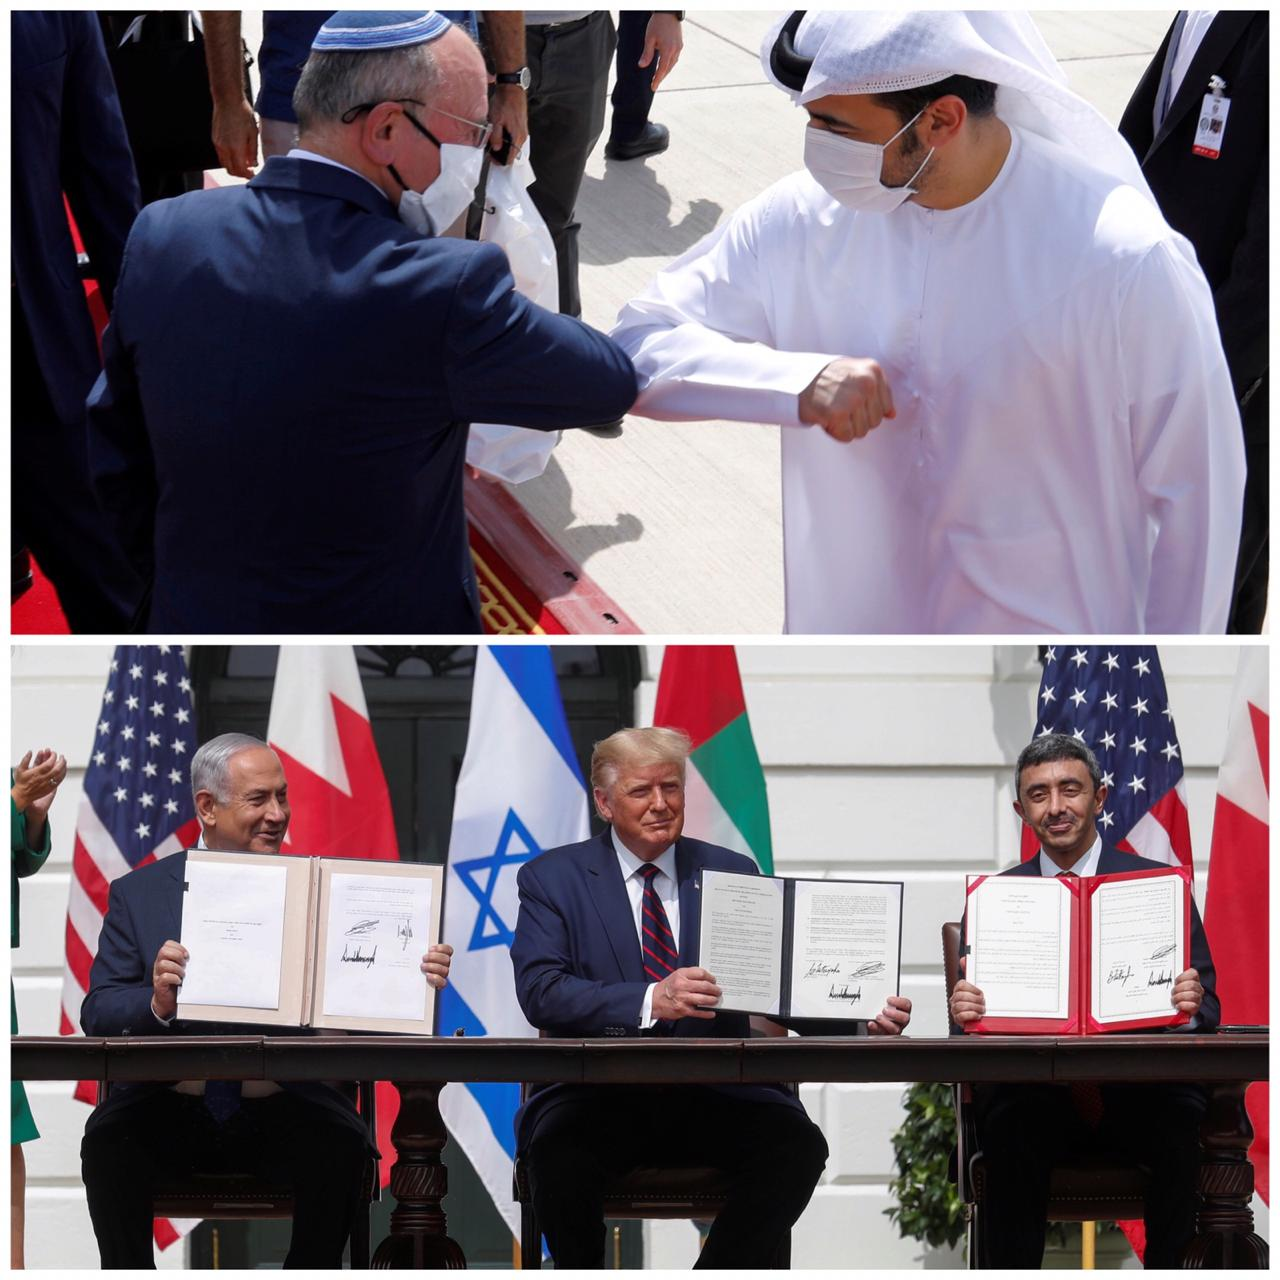 Bahraini ministers are set to make the first official visit to Israel for a tripartite meeting